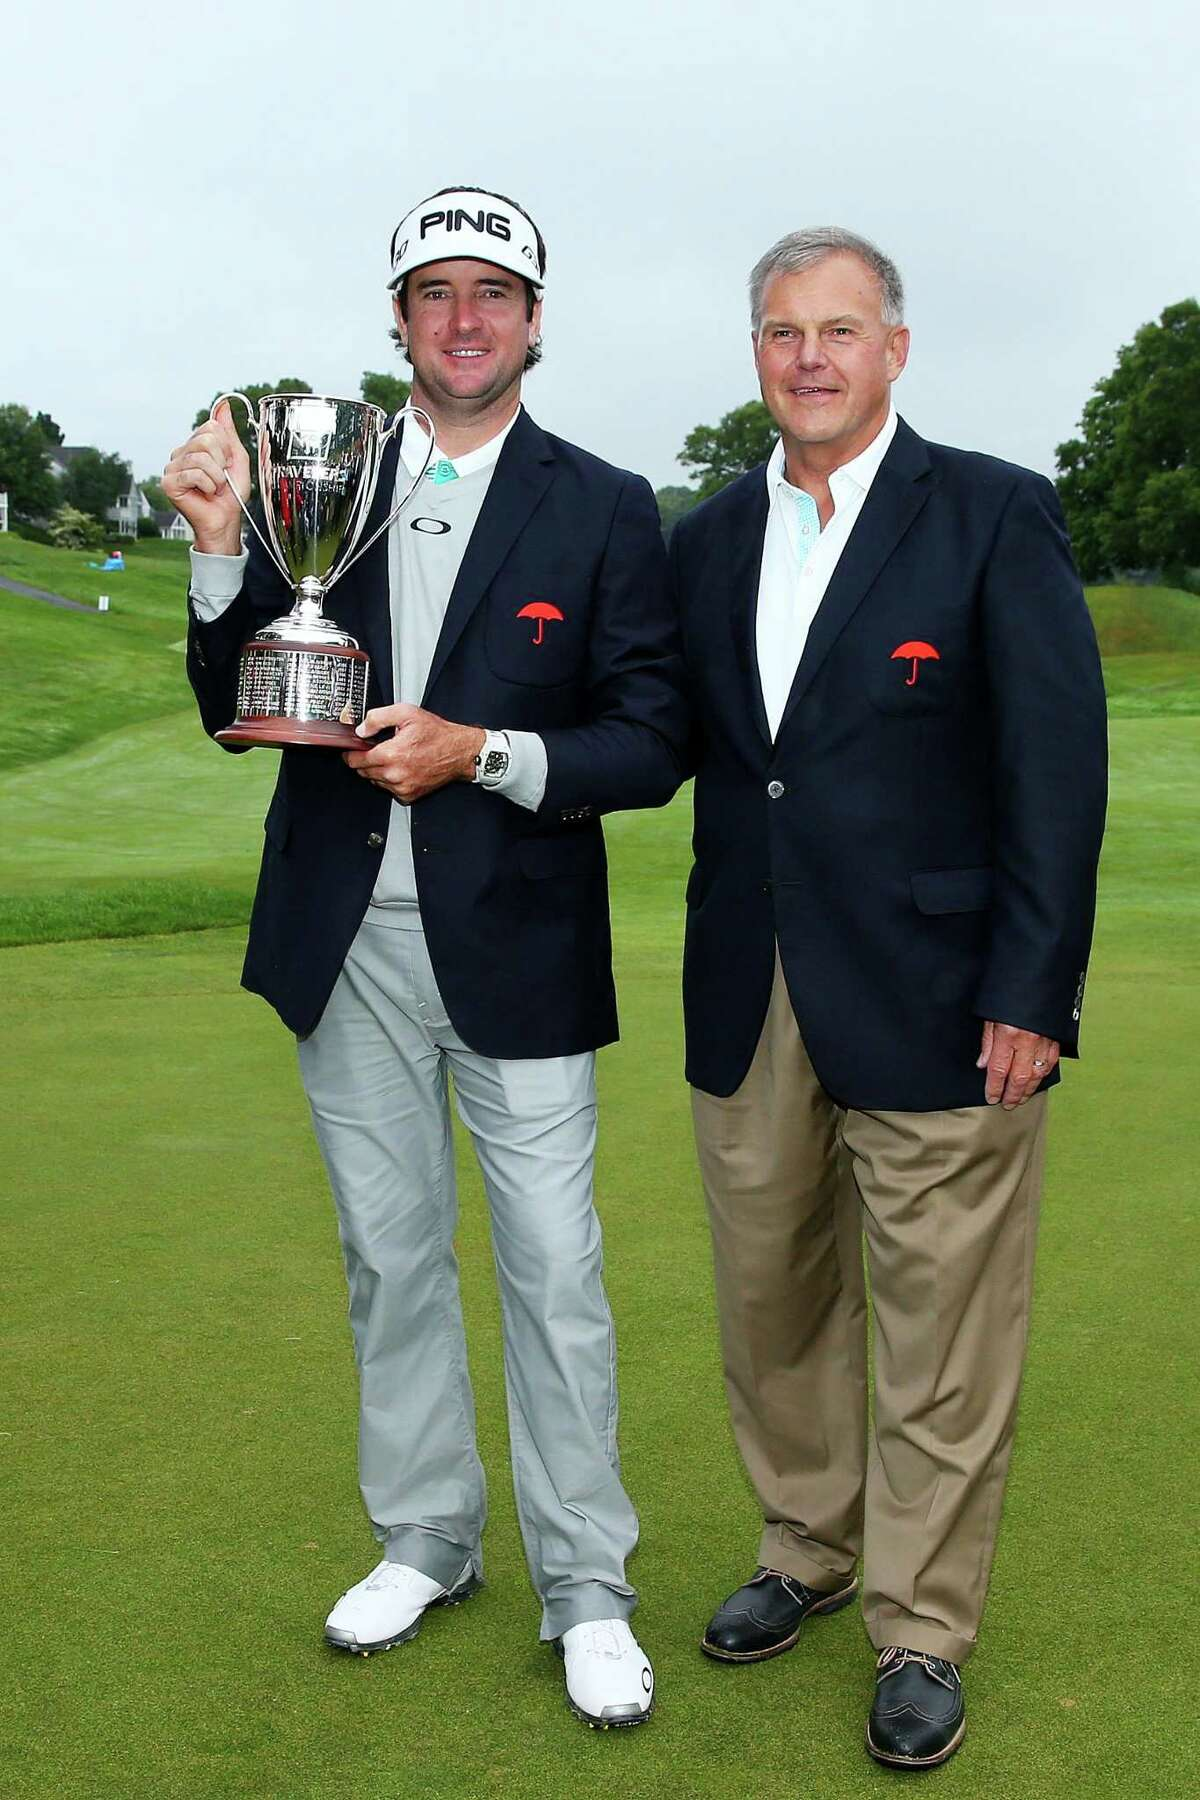 Winner Bubba Watson and Travelers executive Andy Bessette after the final round of the 2015 Travelers Championship.